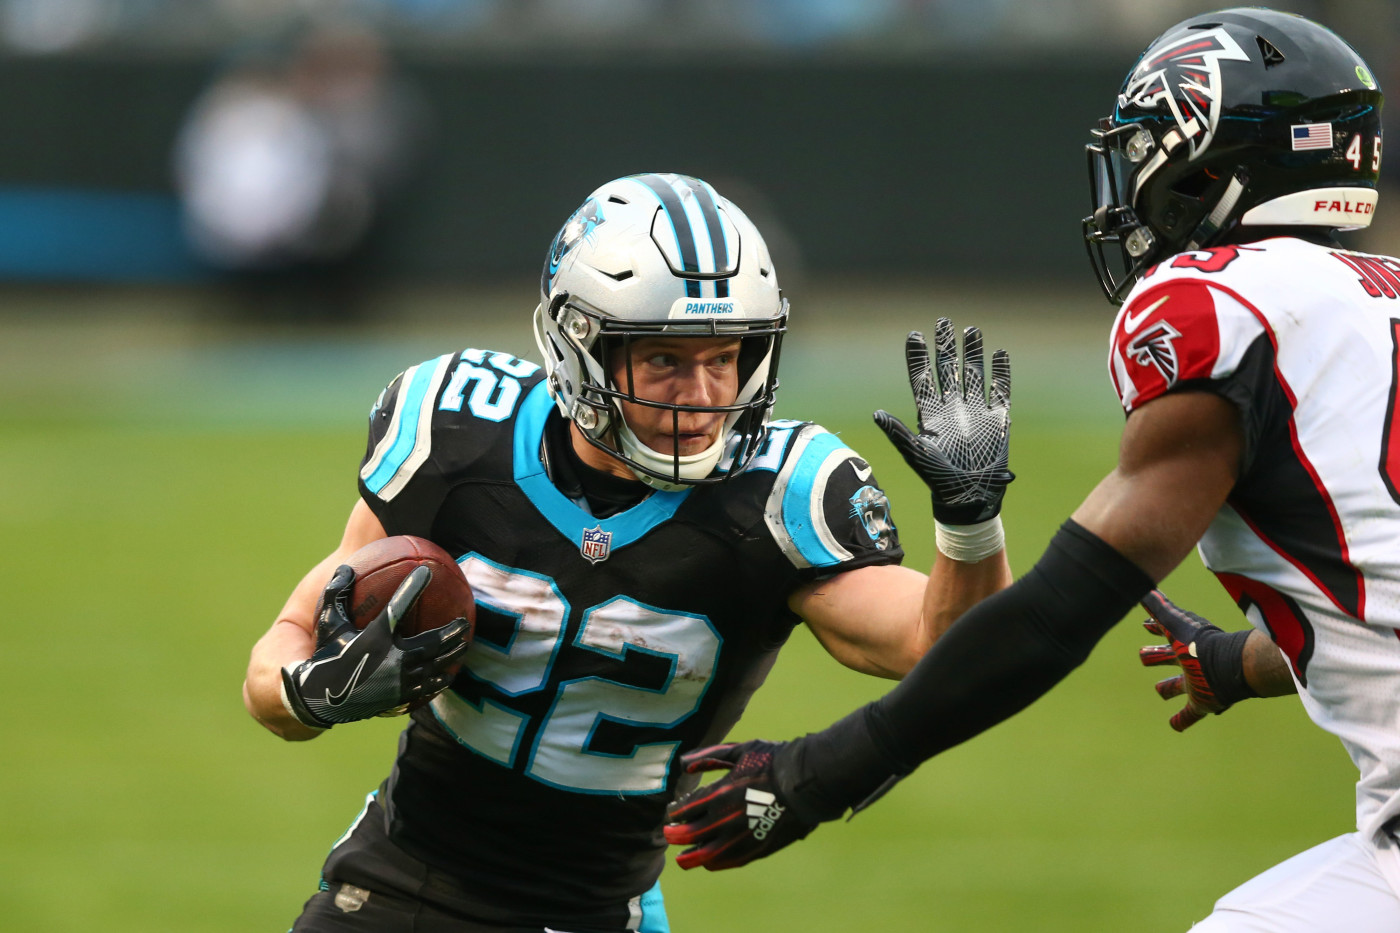 Christian McCaffrey Stiff Arm Panther Falcons 2018